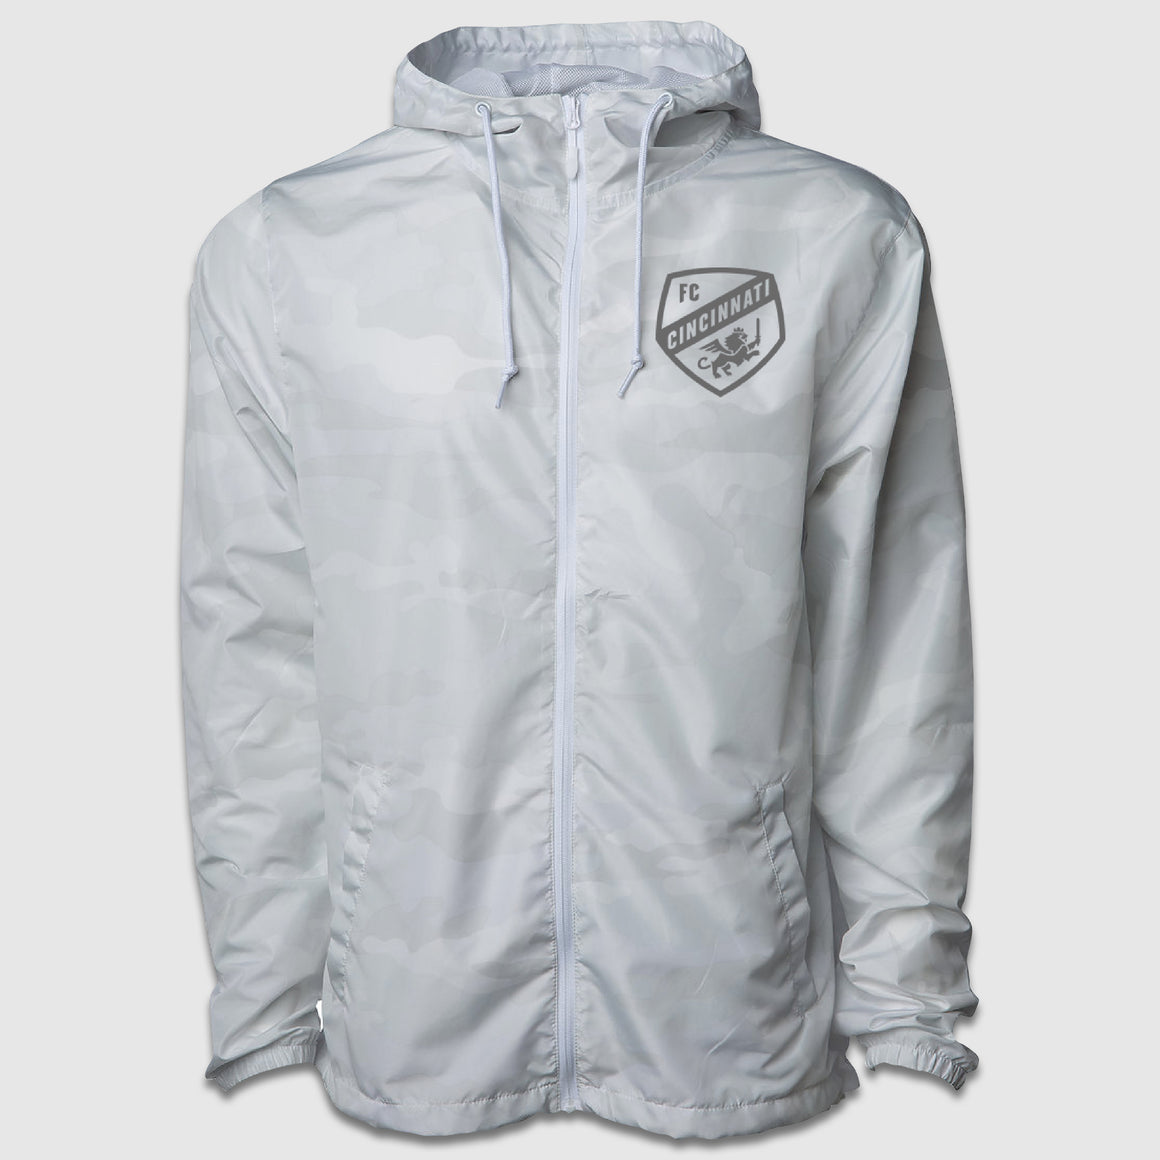 Full Zip FC Cincinnati White Shield Windbreaker Jacket - Cincy Shirts